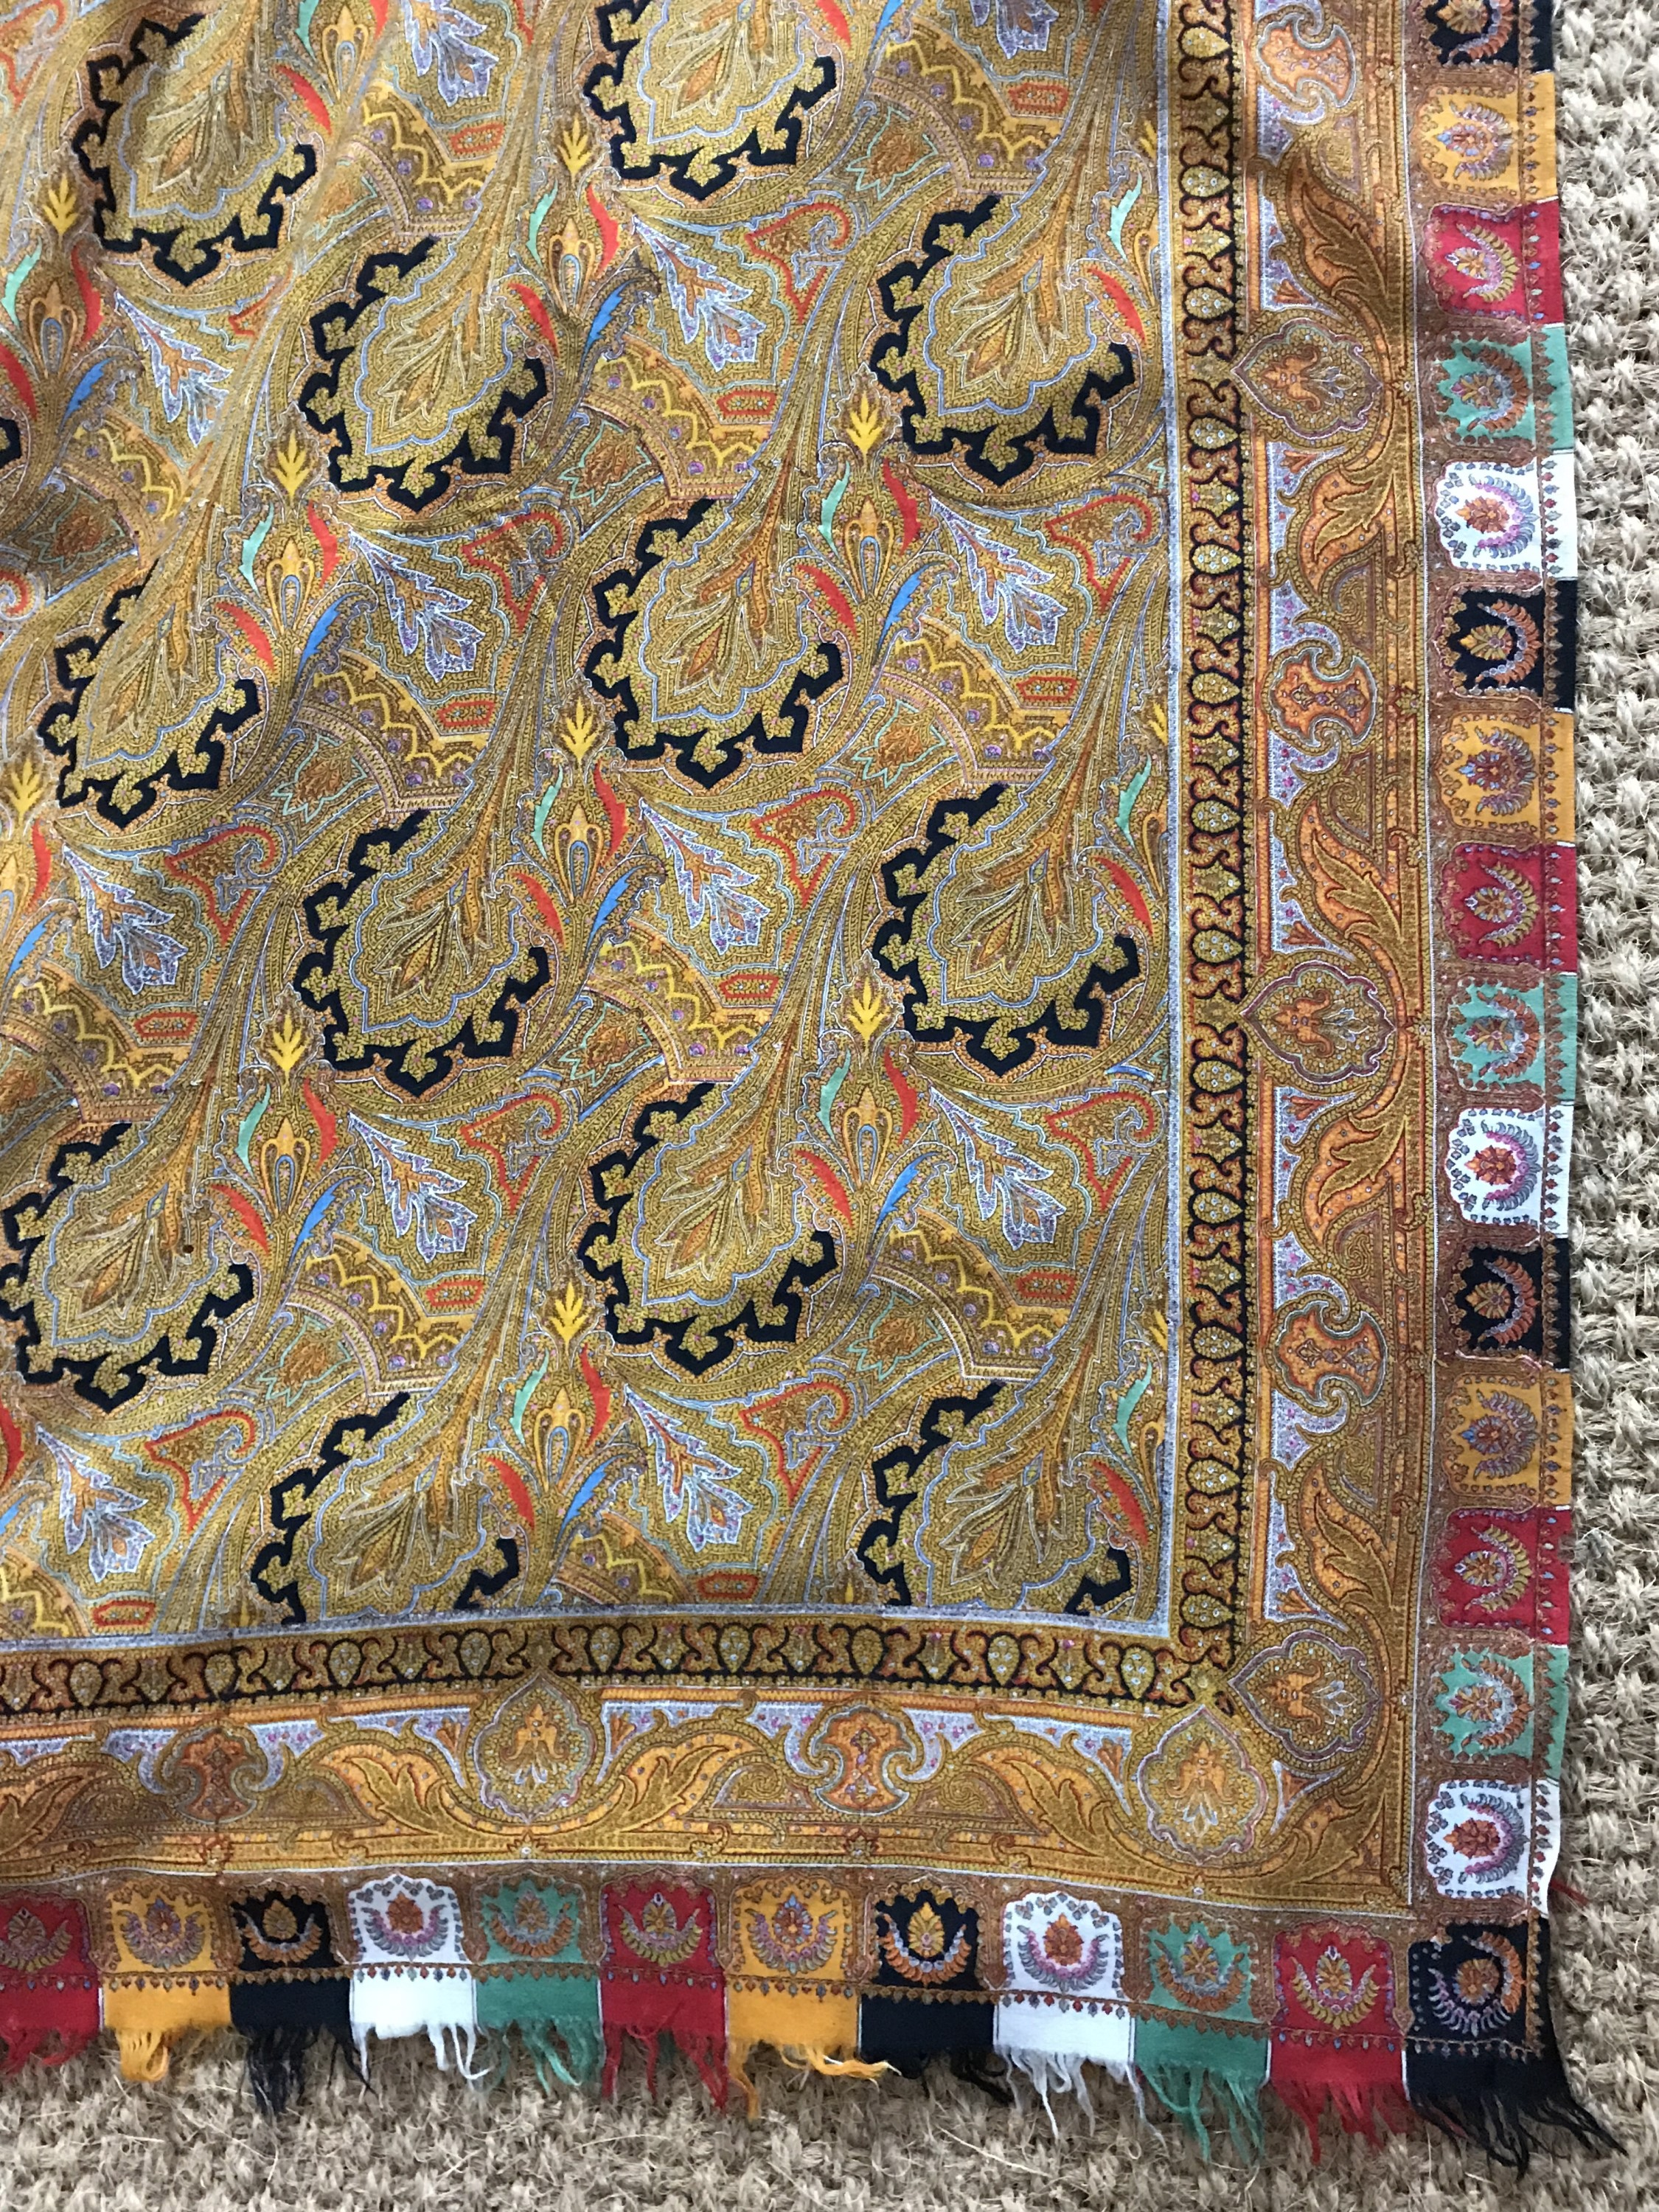 Lot 32 - A Victorian printed cotton paisley shawl, the ground densely decorated with golden botehs picked out